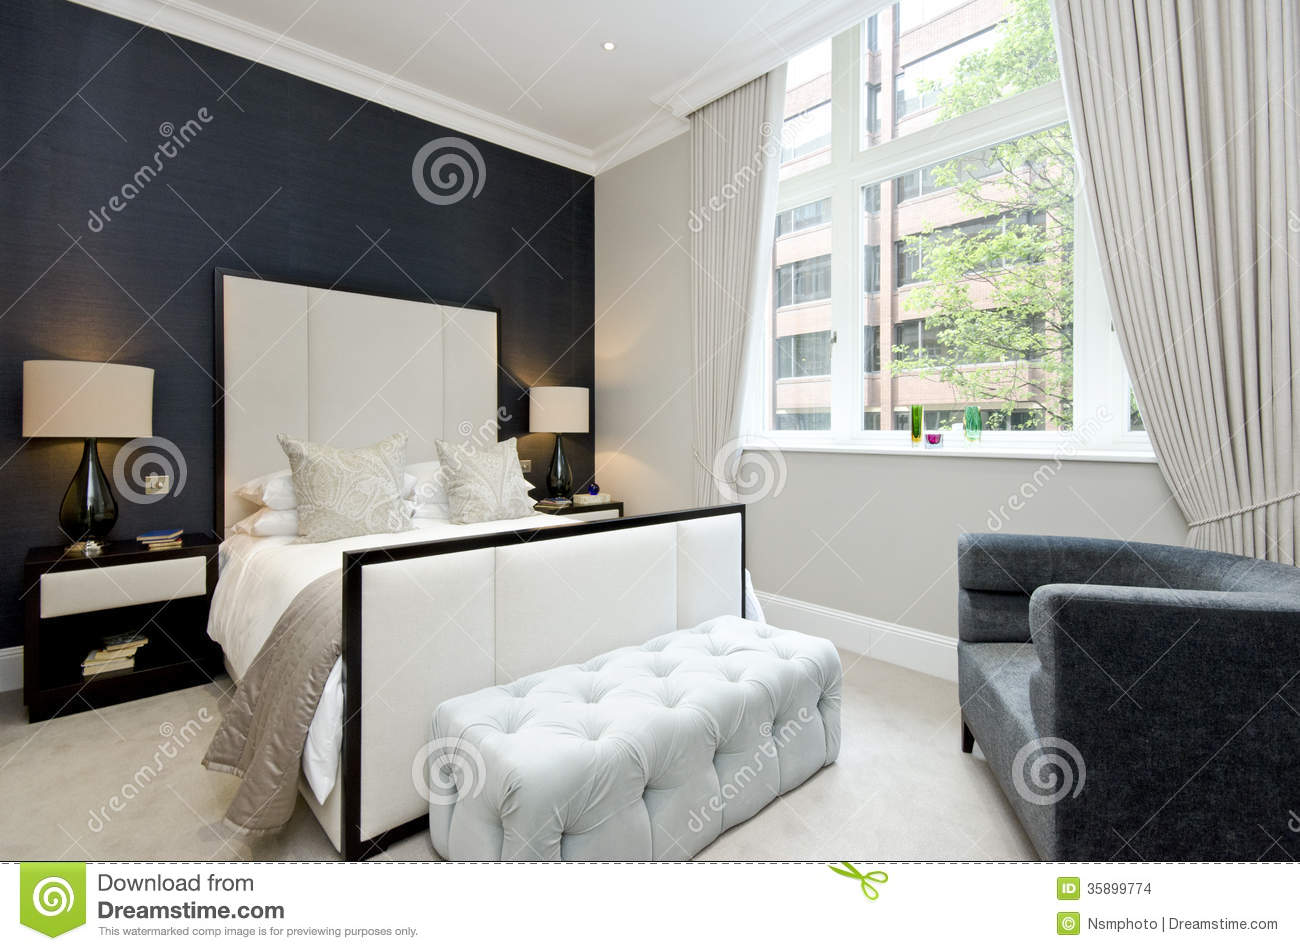 Bedroom Designer Free Contemporary Bedroom With King Size Bed With Luxury